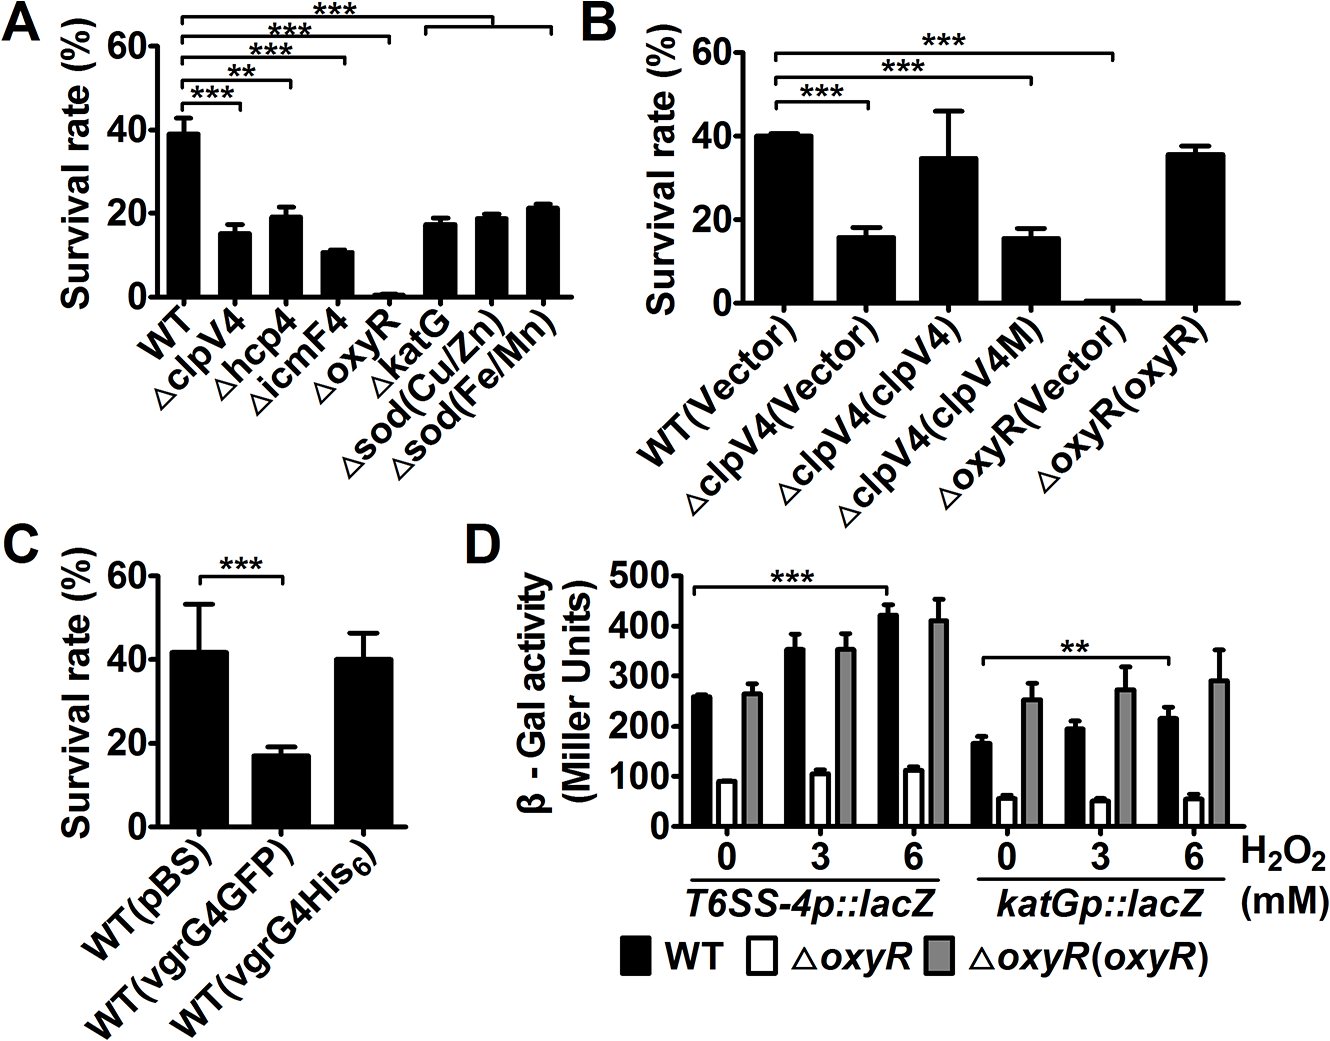 T6SS-4 is essential for <i>Yptb</i> survival under oxidative stress.